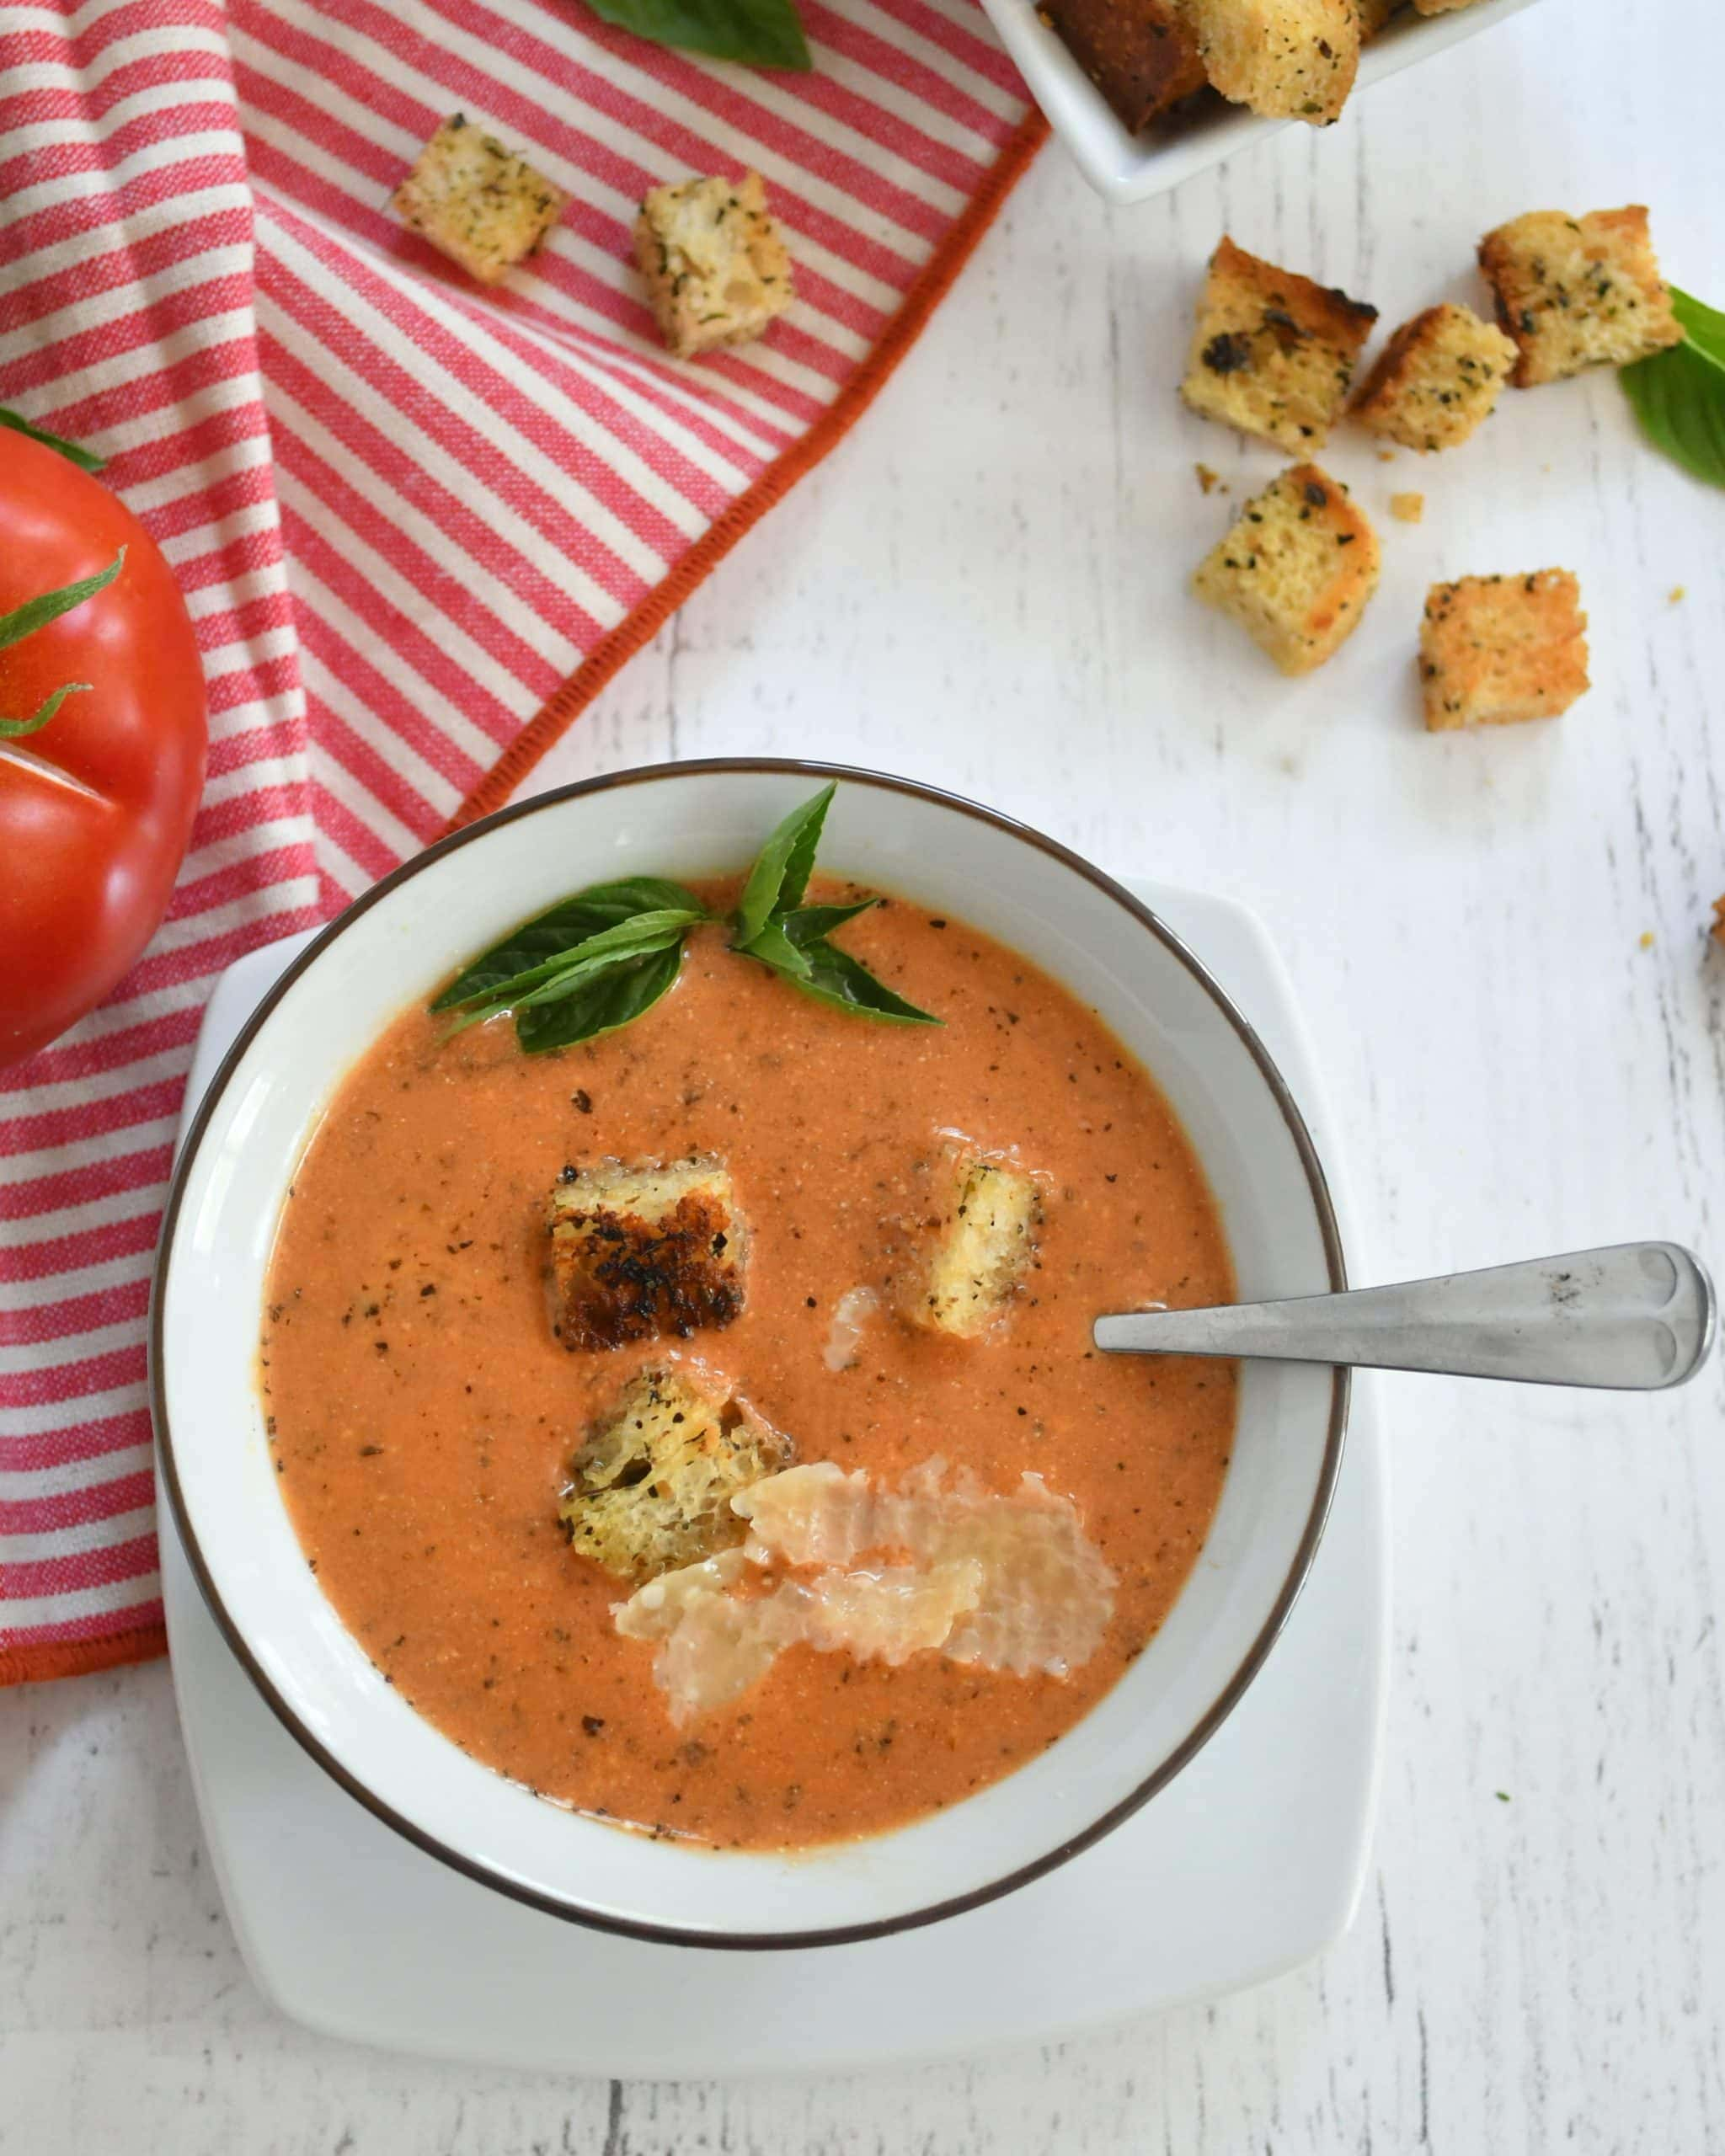 Tomato basil soup in a bowl with a spoon; topped with fresh basil, croutons,and Parmesan cheese; with a red and white napkin nearby and a red tomato, all framed with croutons sprinkled about